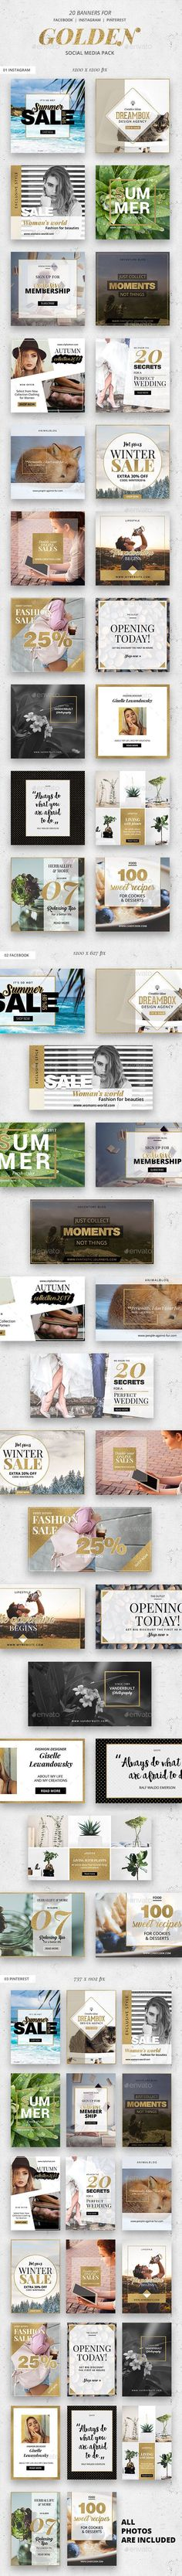 Golden Social Media Pack - 20 Banners For Facebook, Instagram and Pinterest - Template PSD